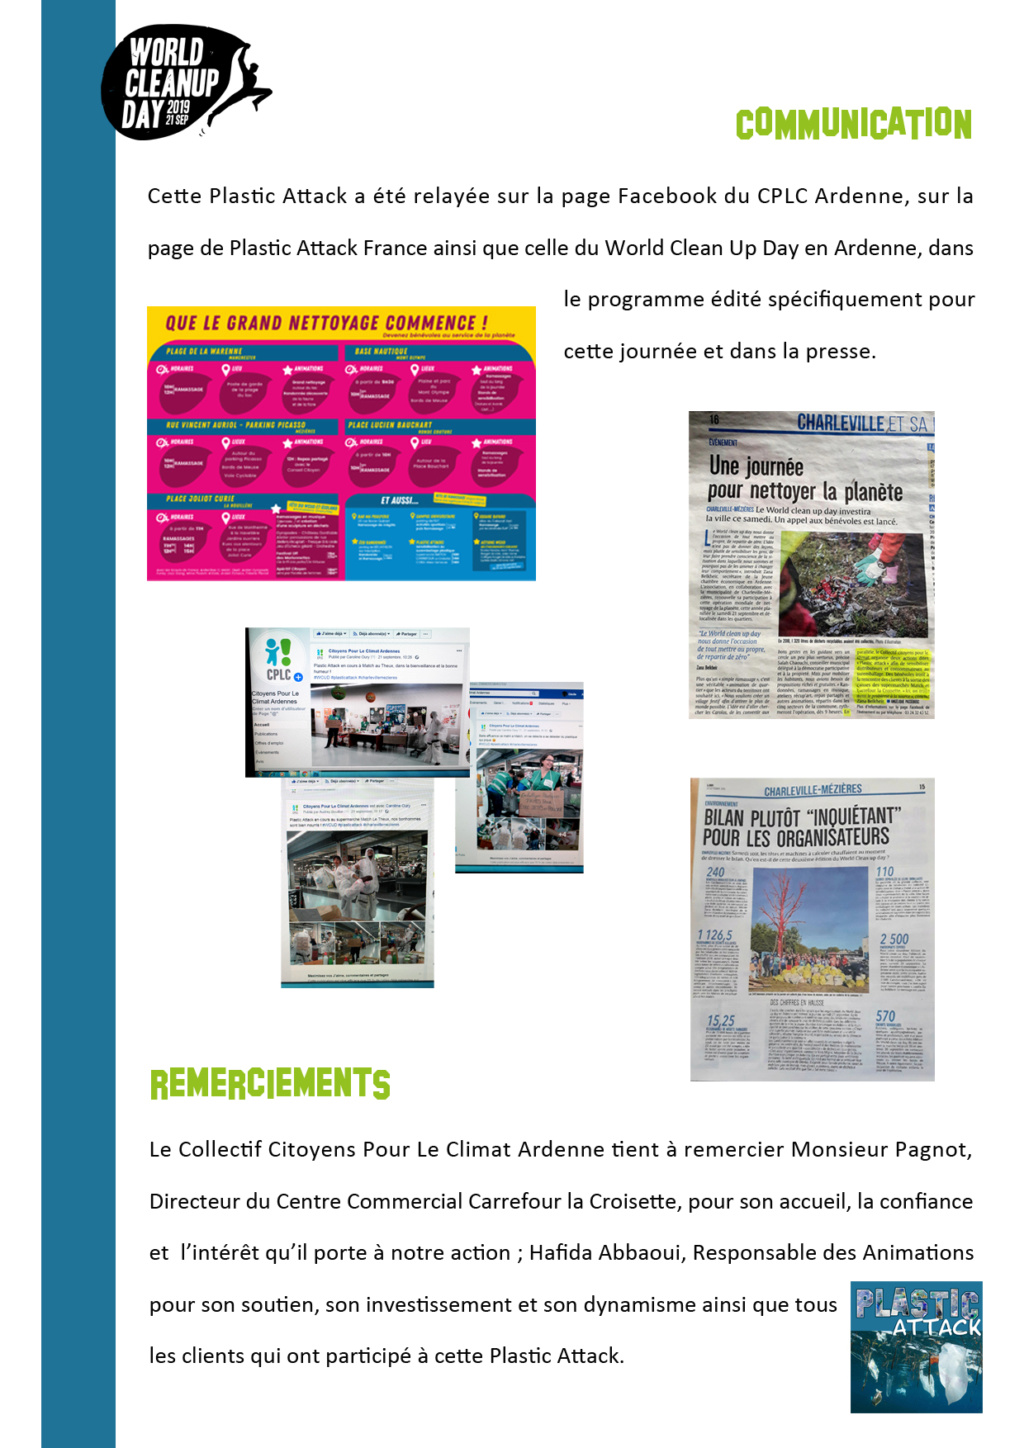 21/09/19 des plastics attacks en co-organisation avec le World Clean Up Day Ardennes  - Page 2 Bilan_23